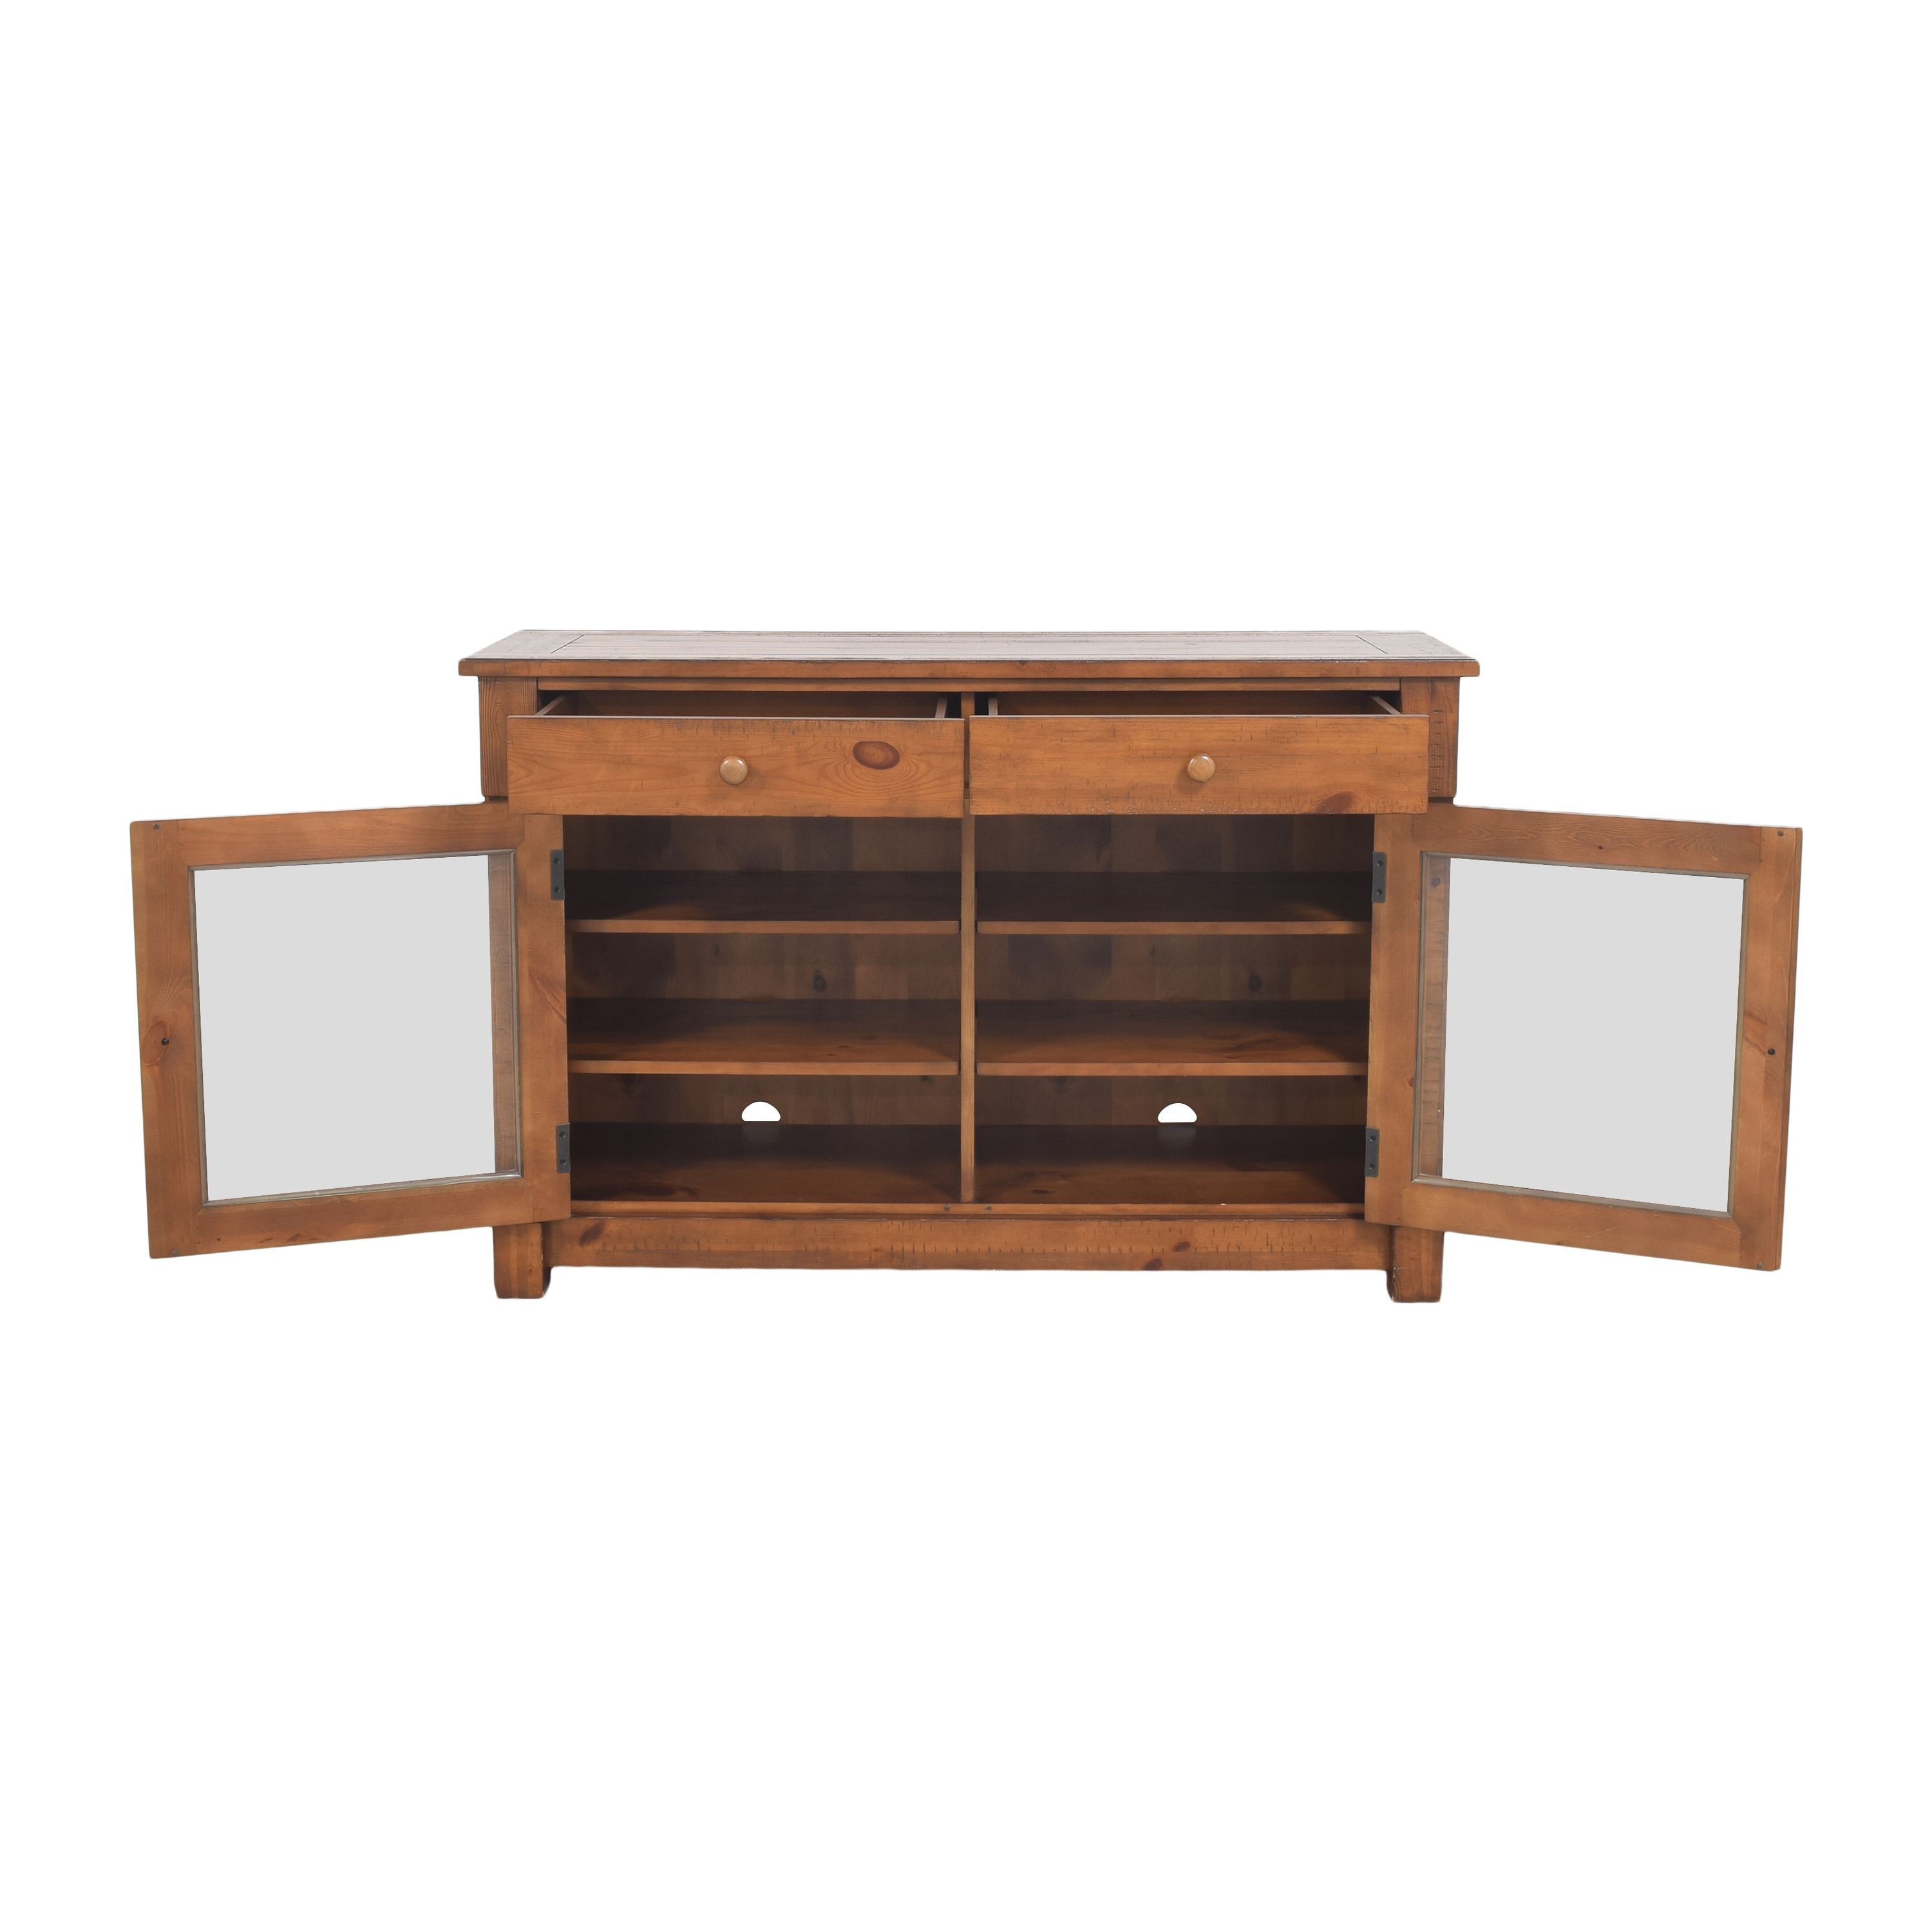 Pottery Barn Pottery Barn Buffet Sideboard ct